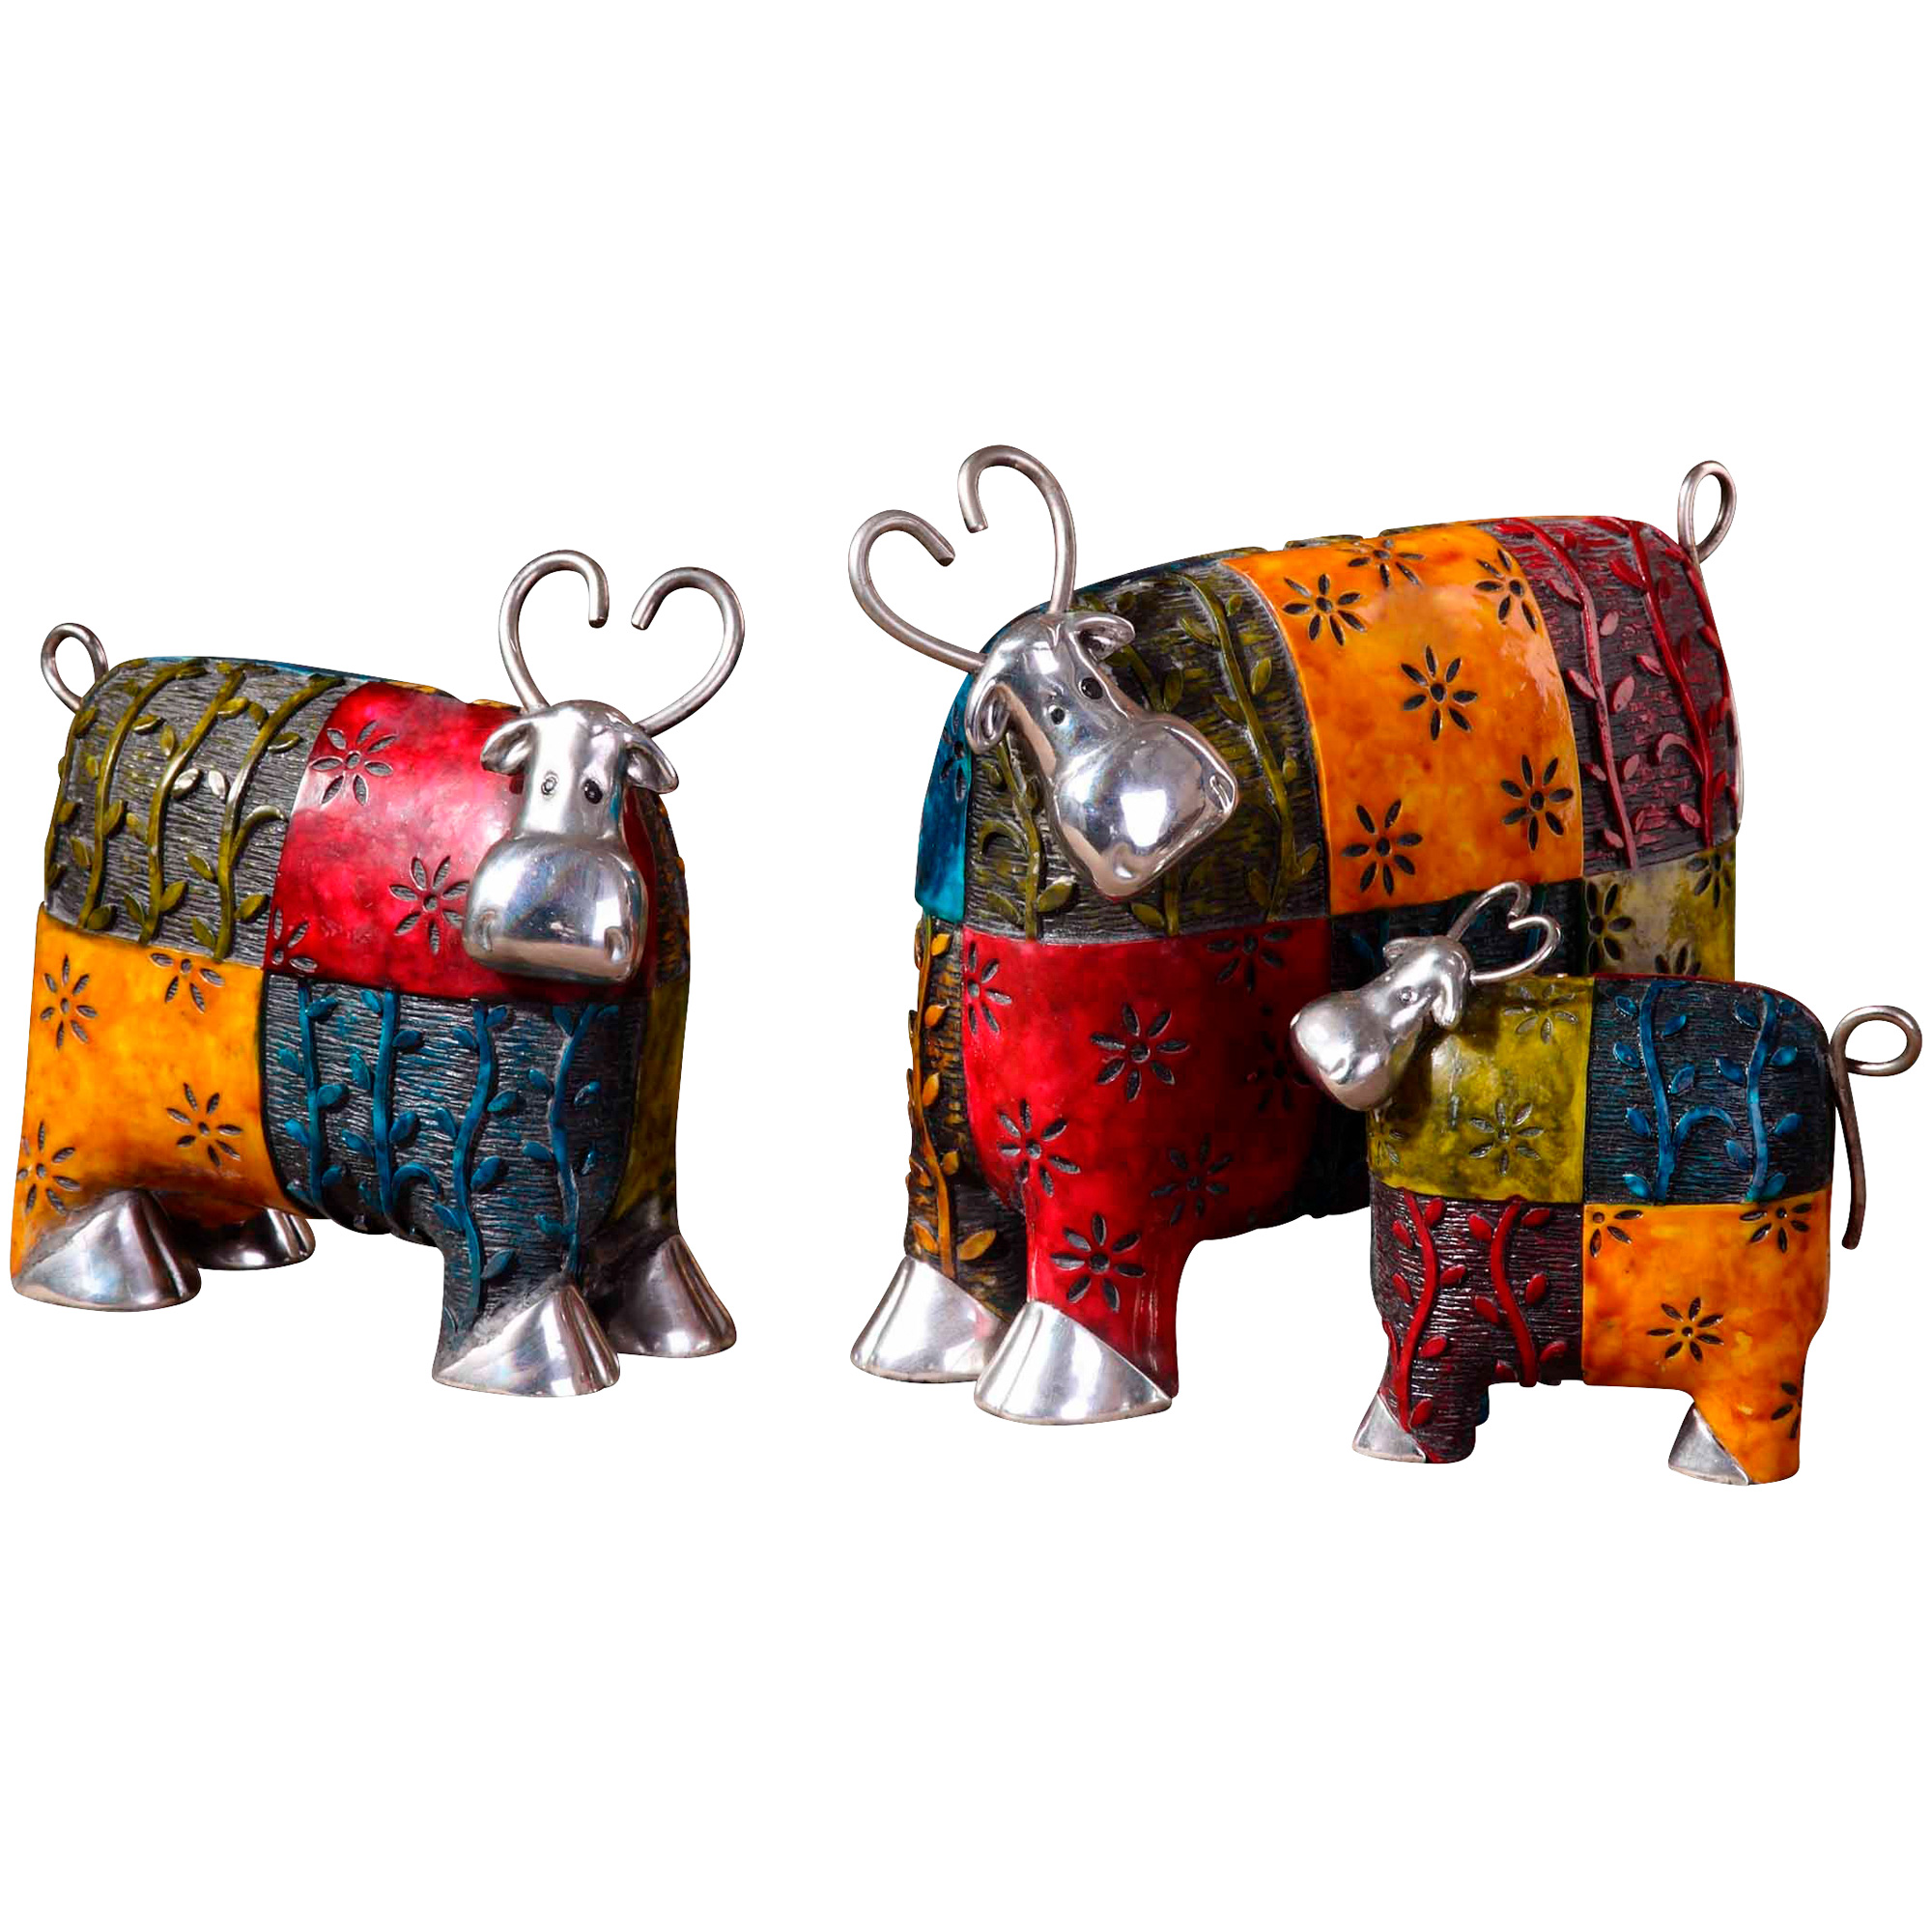 Uttermost | Colorful Cows Figurines Set